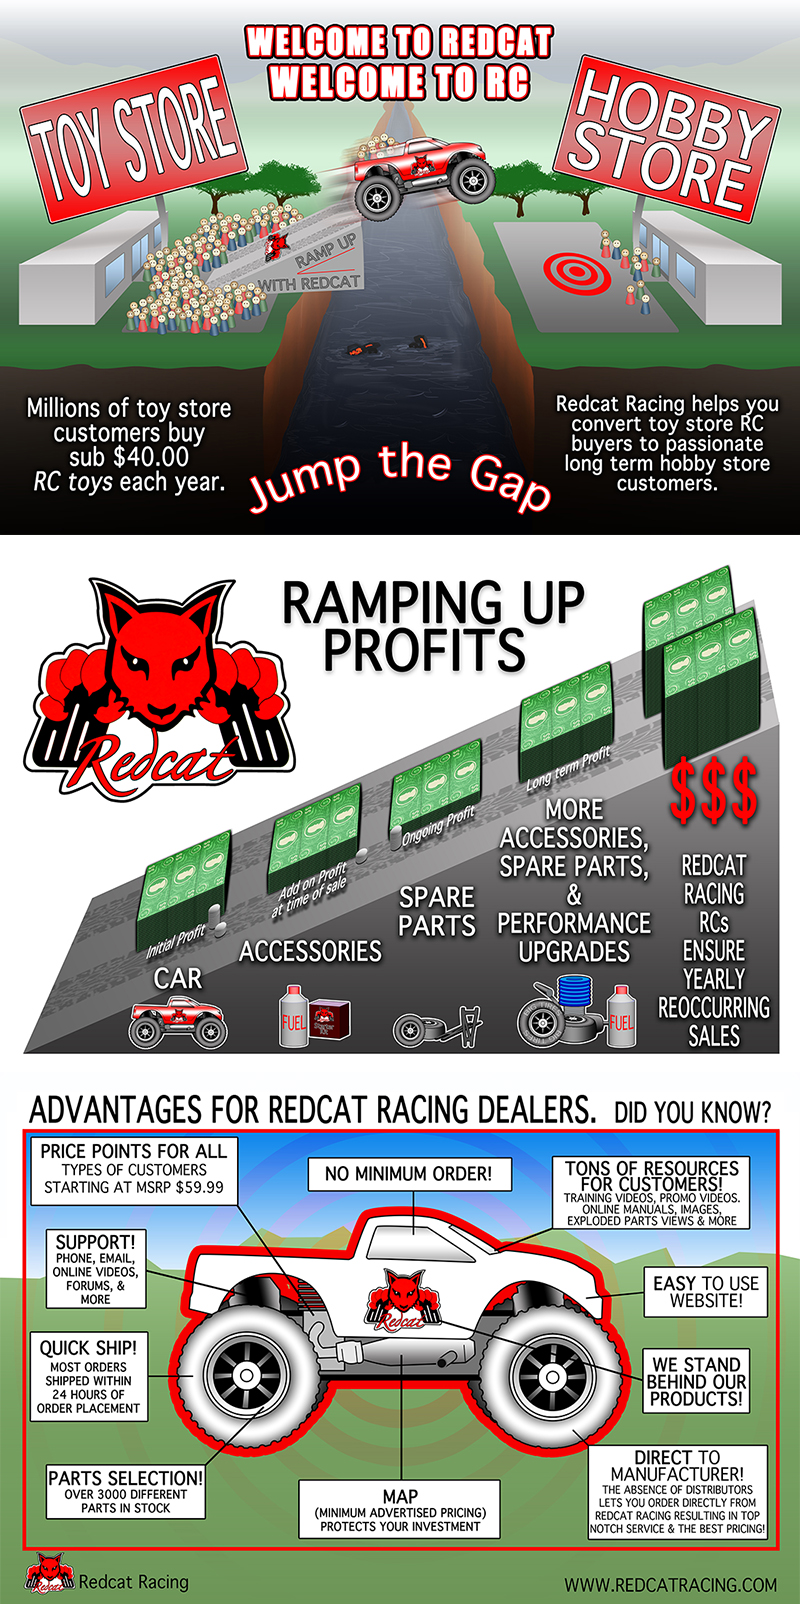 Redcat Racing Deal Infographic Image